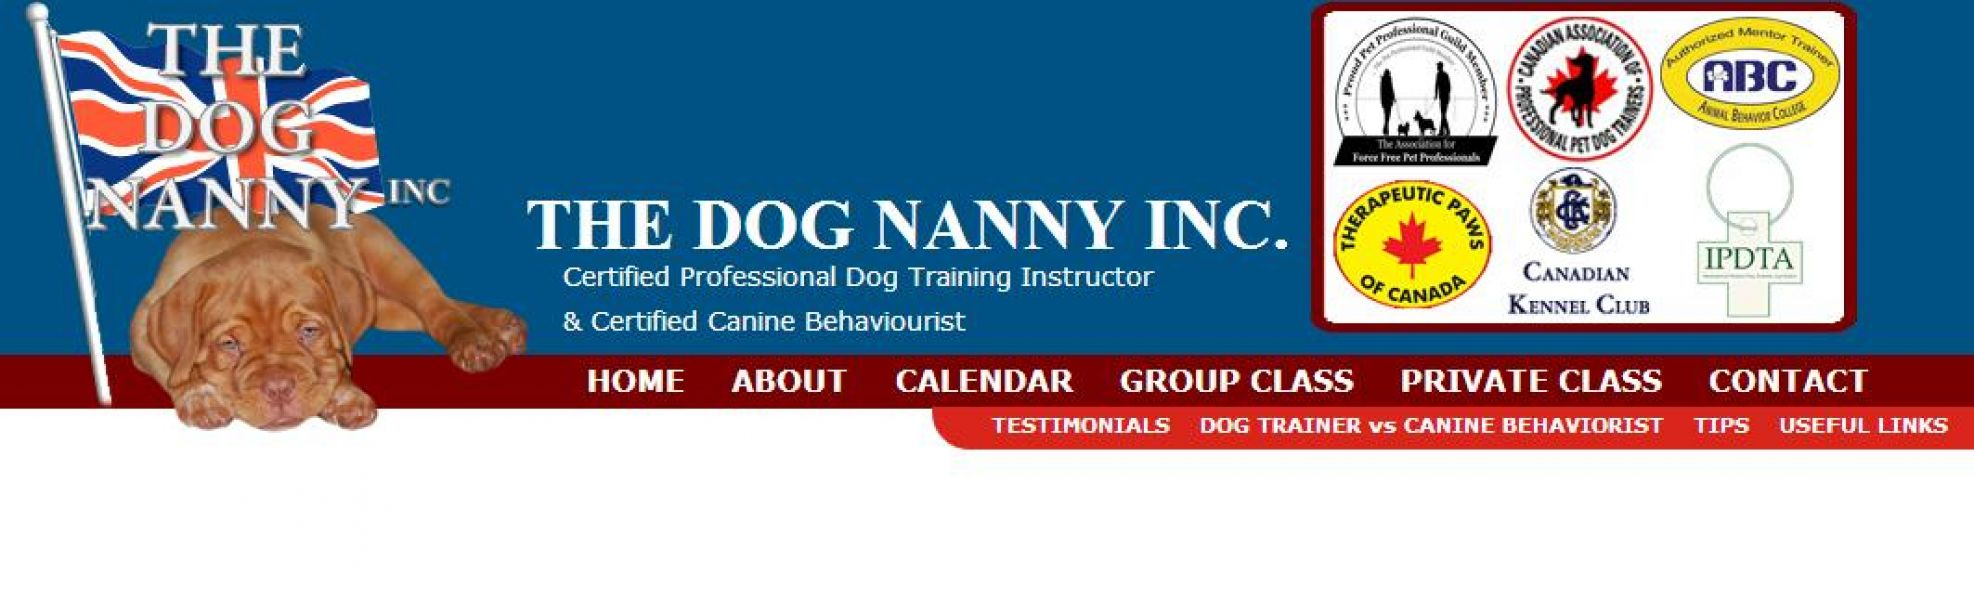 The Dog Nanny's Canine Training Academy